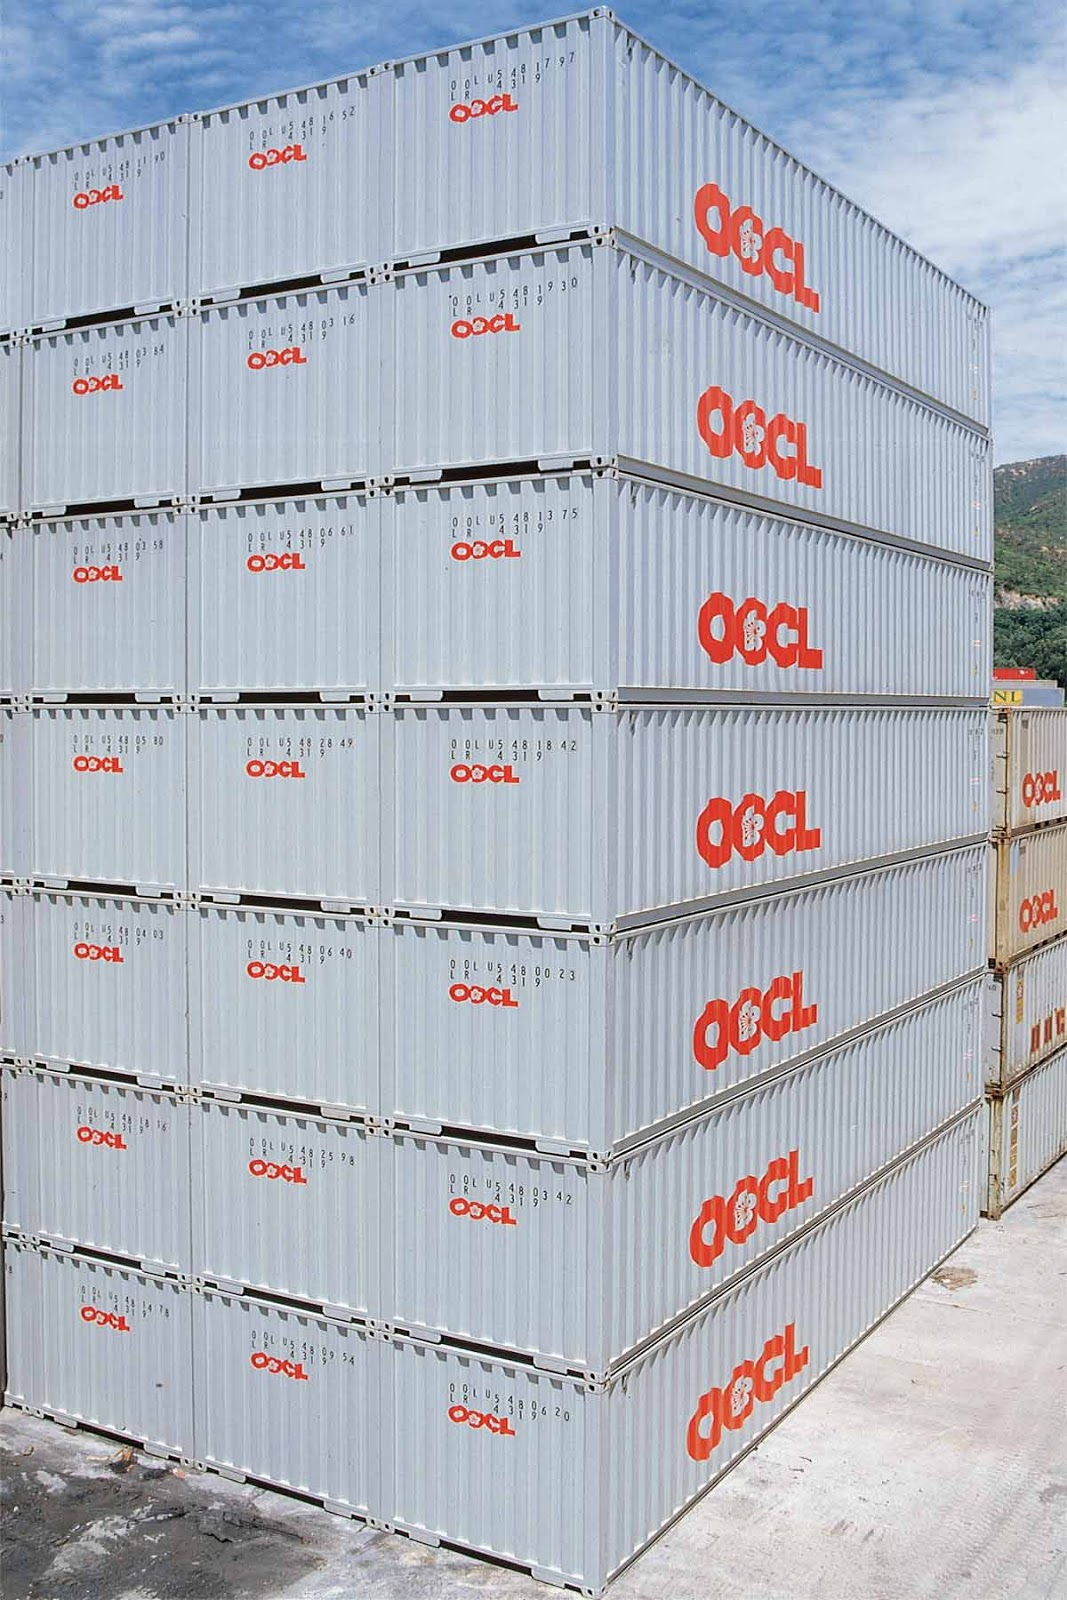 oocl orient overseas container line tracking